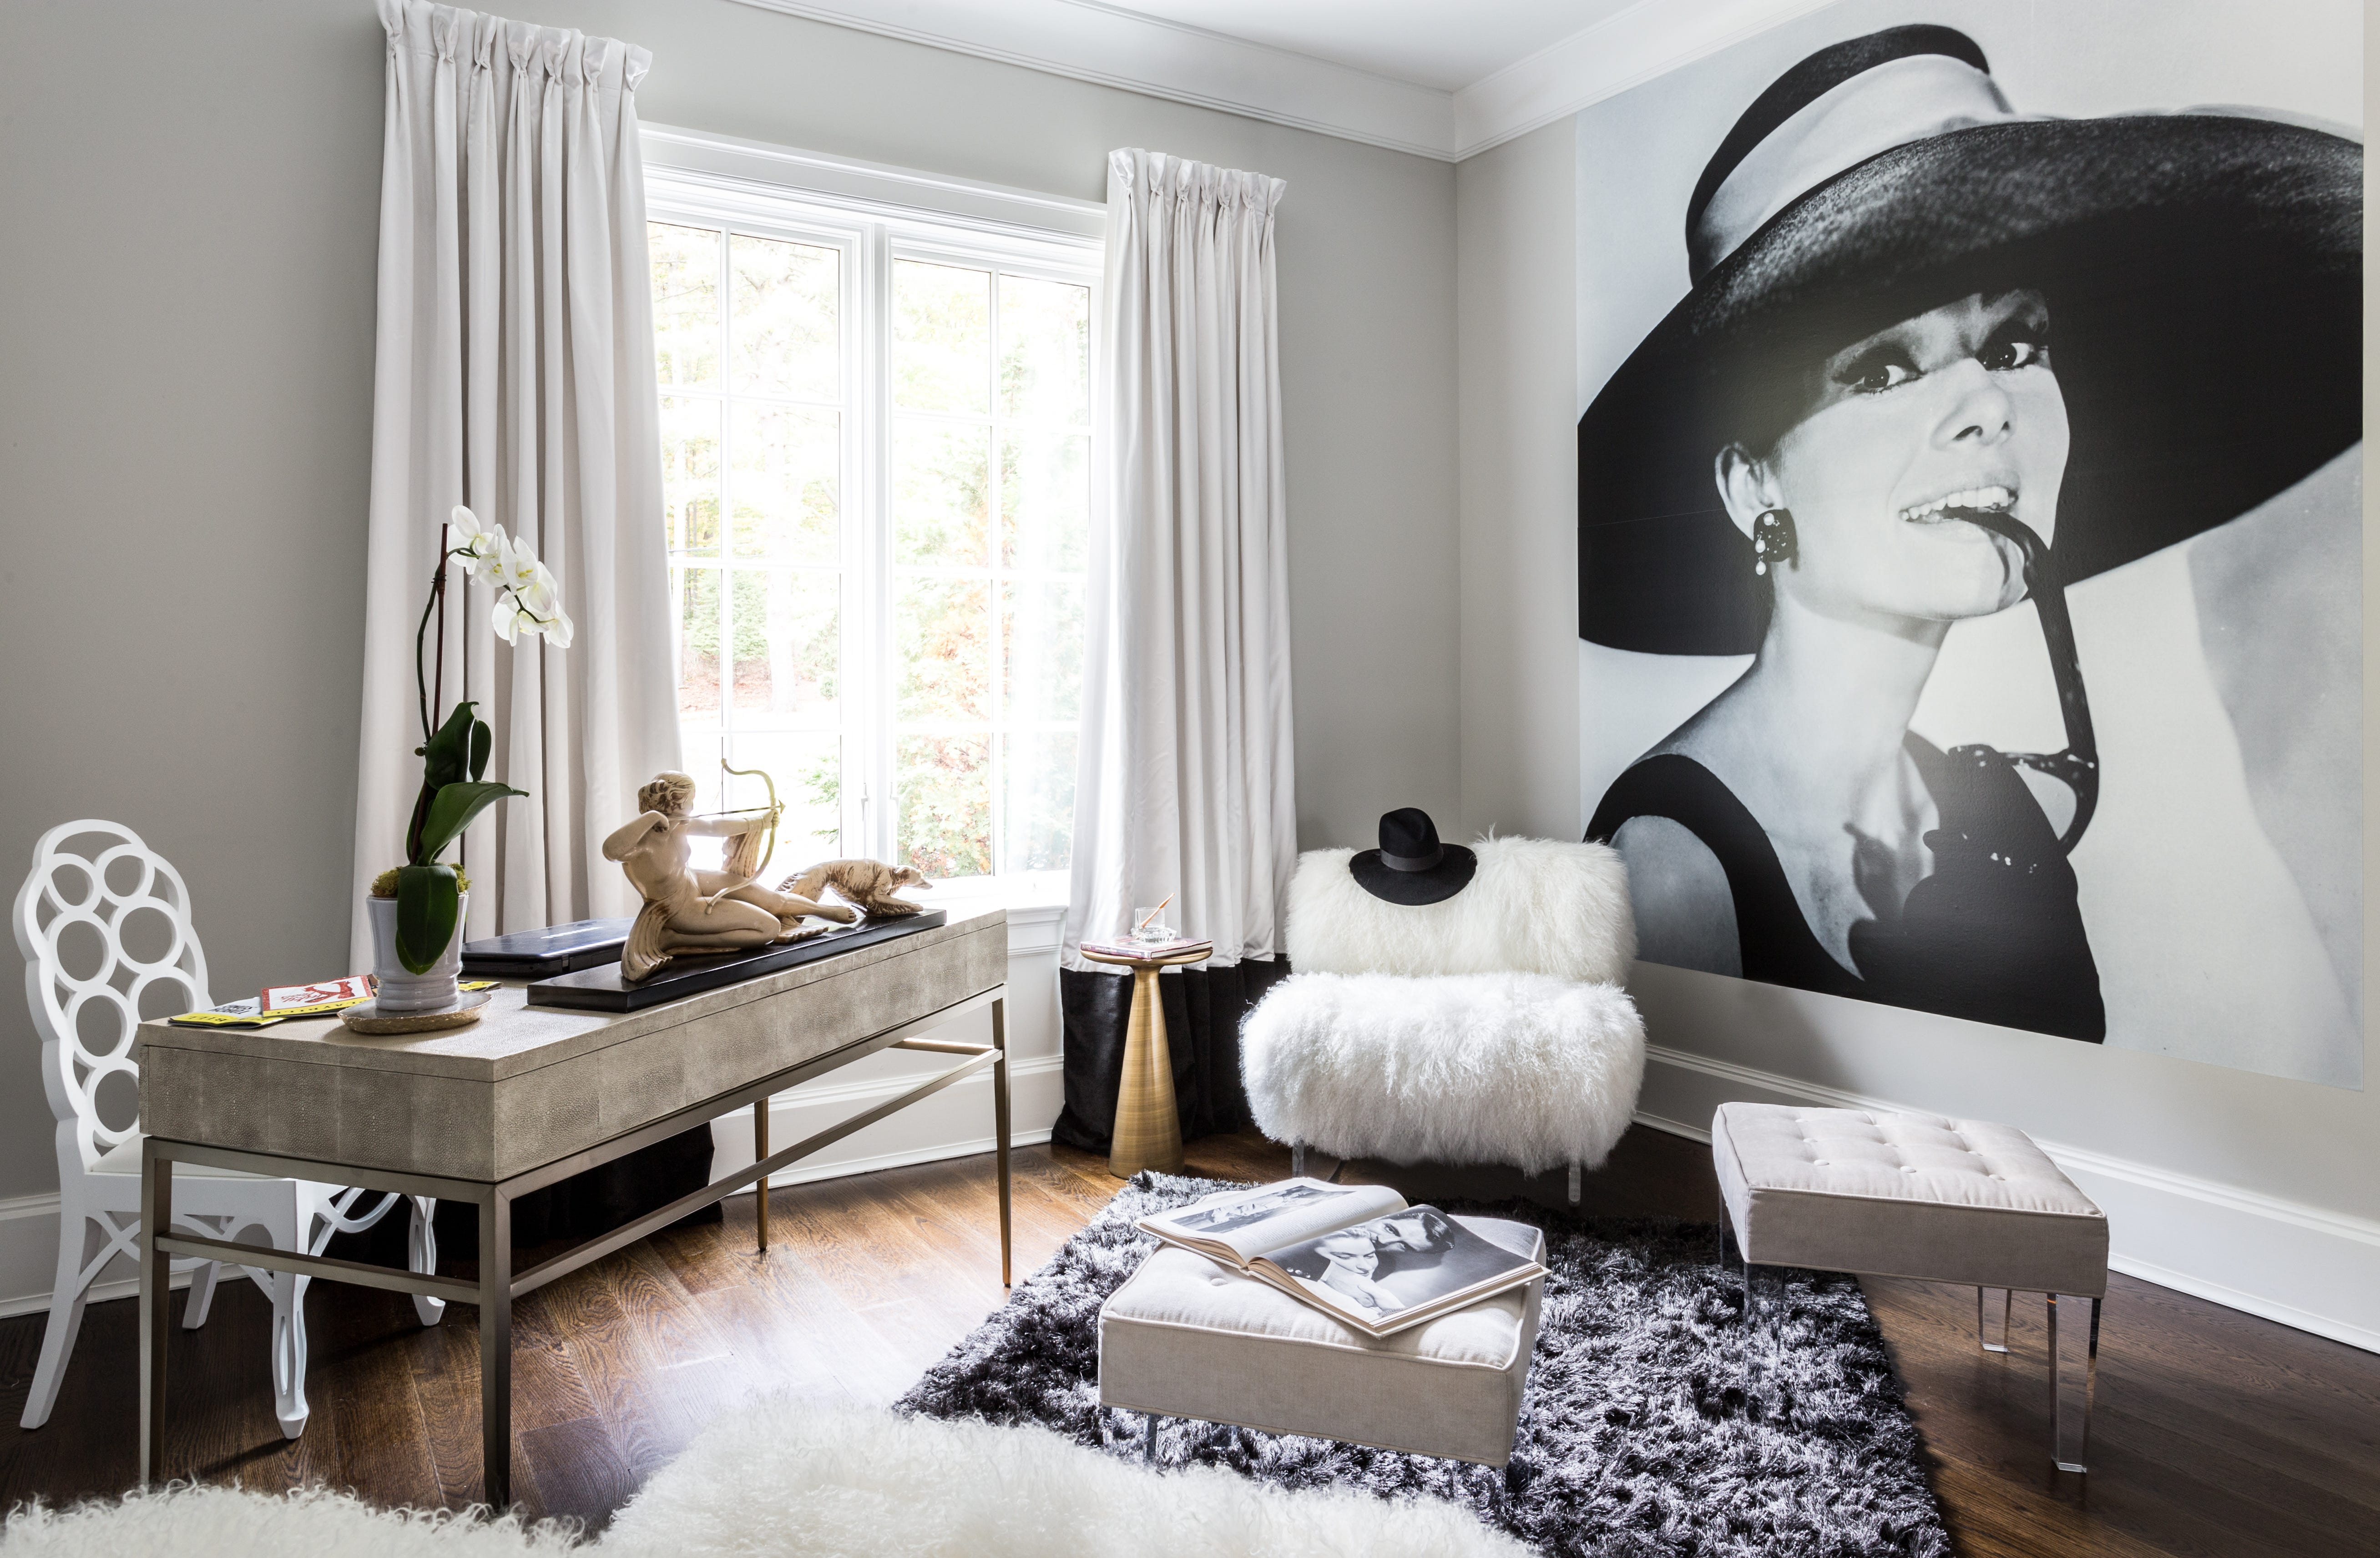 If Youu0027re Contemplating About New Ways To Decorate A Room In Your Home,  These Ideas Might Help. The Designers Drew Upon Their Clientsu0027 Love Of  Movies, ...